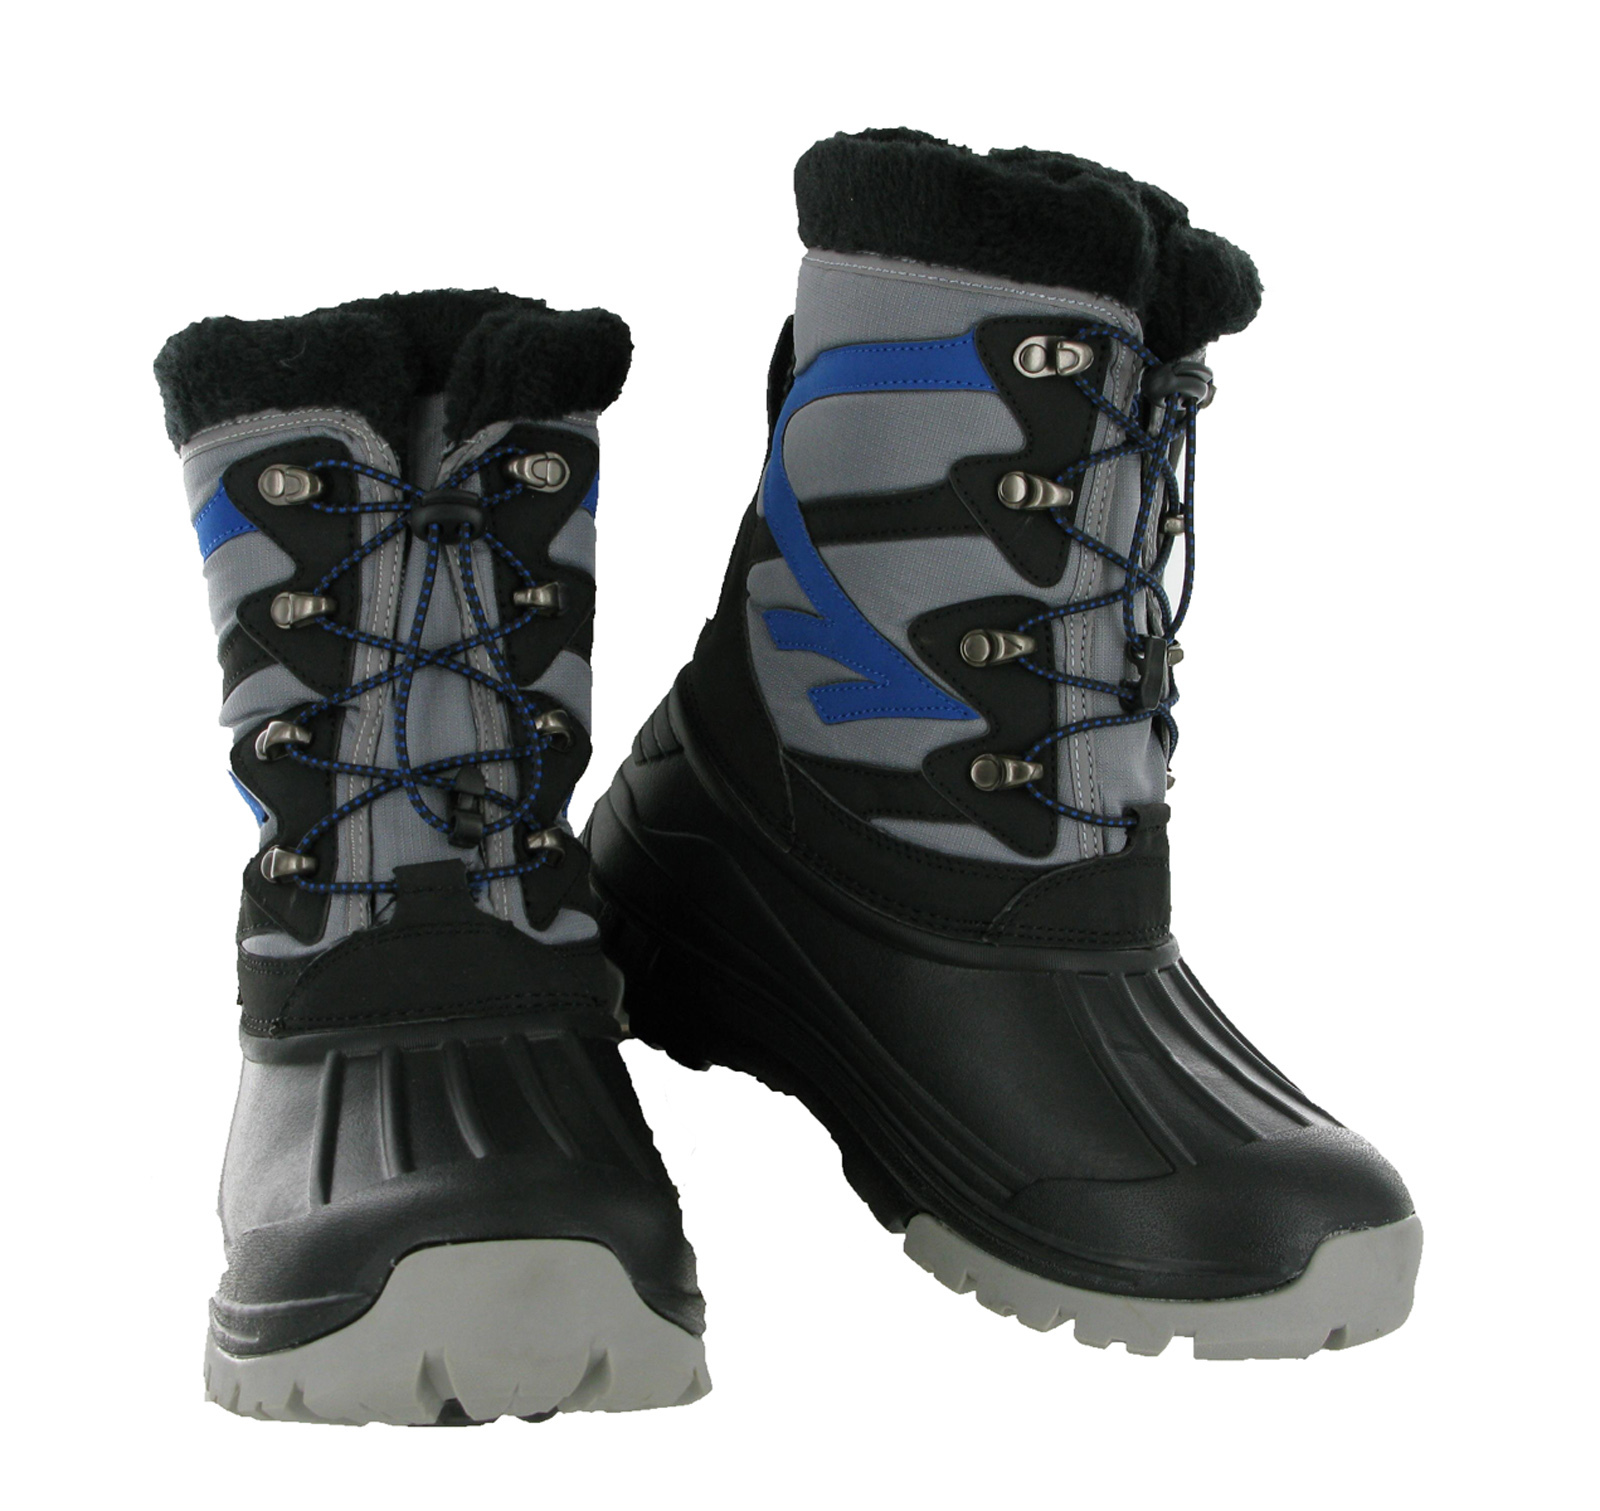 Discover the latest styles of boys' boots at Famous Footwear! Find the right fit today!